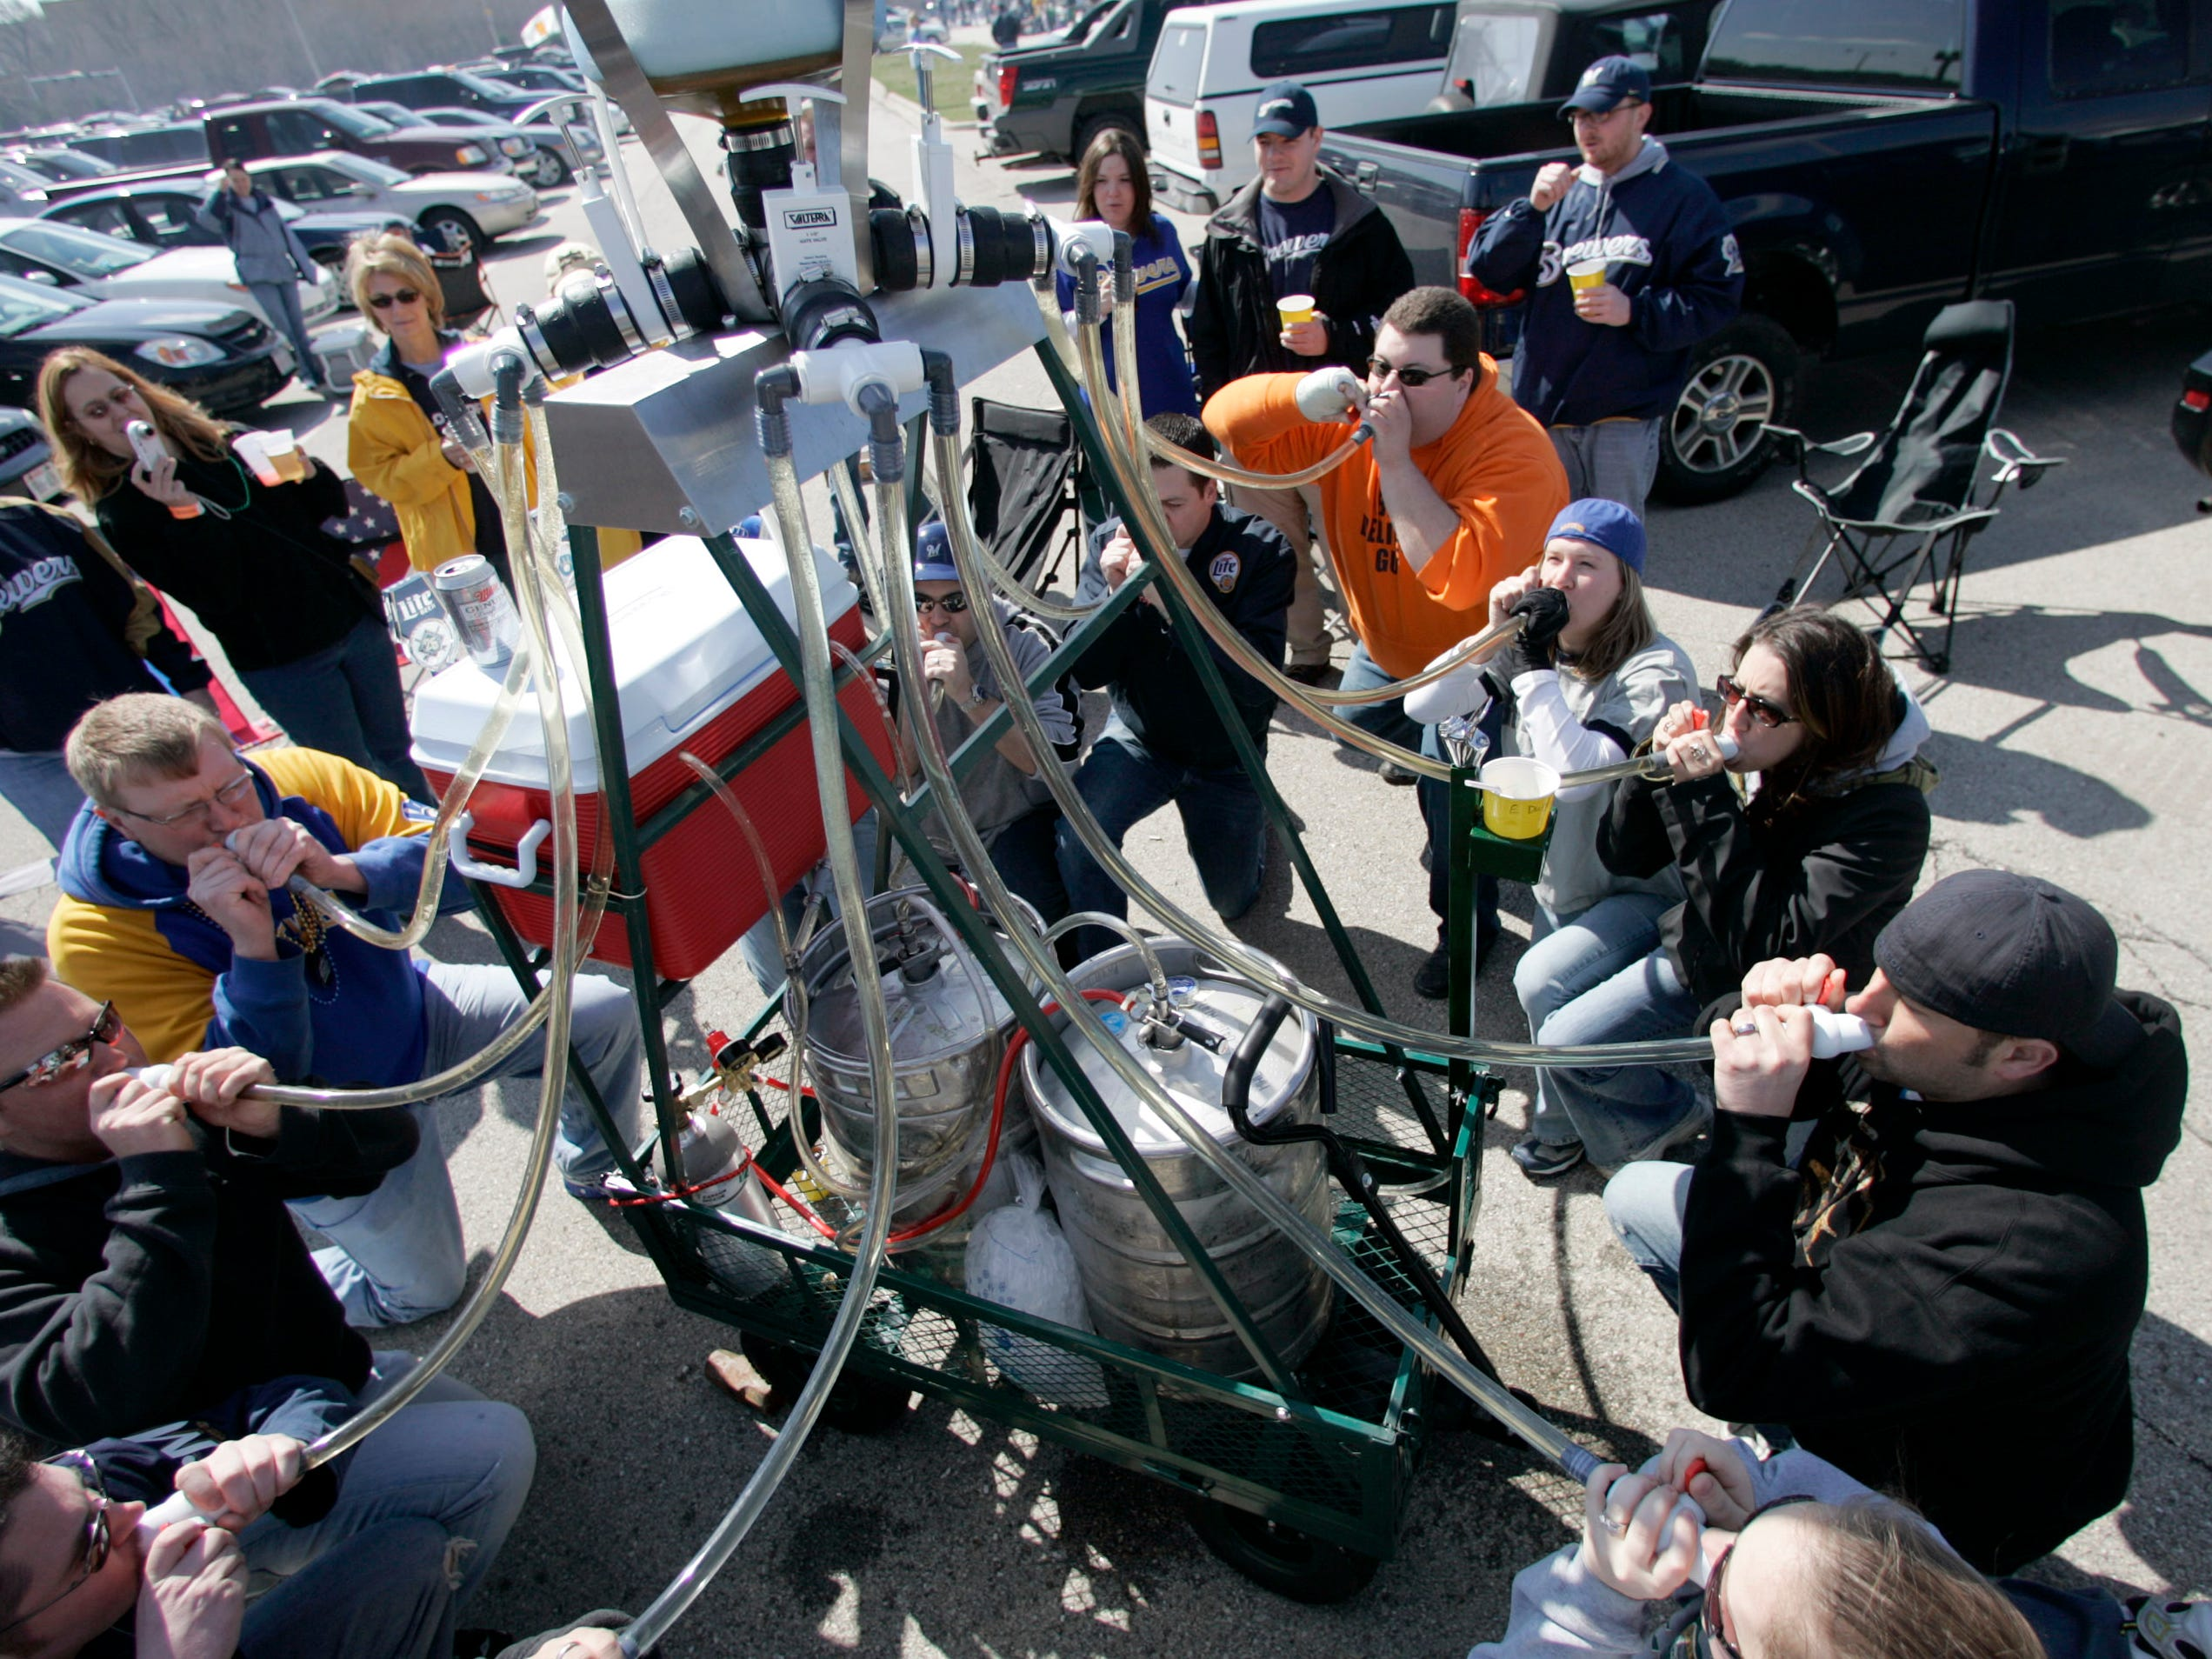 Twelve people try out a 12-person beer bong created by Jeff Barton of Milwaukee (in orange), before opening day at Miller Park on April 2, 2007. Barton designed the contraption, which weighs 600 pounds fully loaded and serves two beers per person when doing a group drink. It also has a fully functioning beer bubbler. Oh, yeah: In the game inside Miller Park, the Milwaukee Brewers defeated the Los Angeles Dodgers, 7-1.